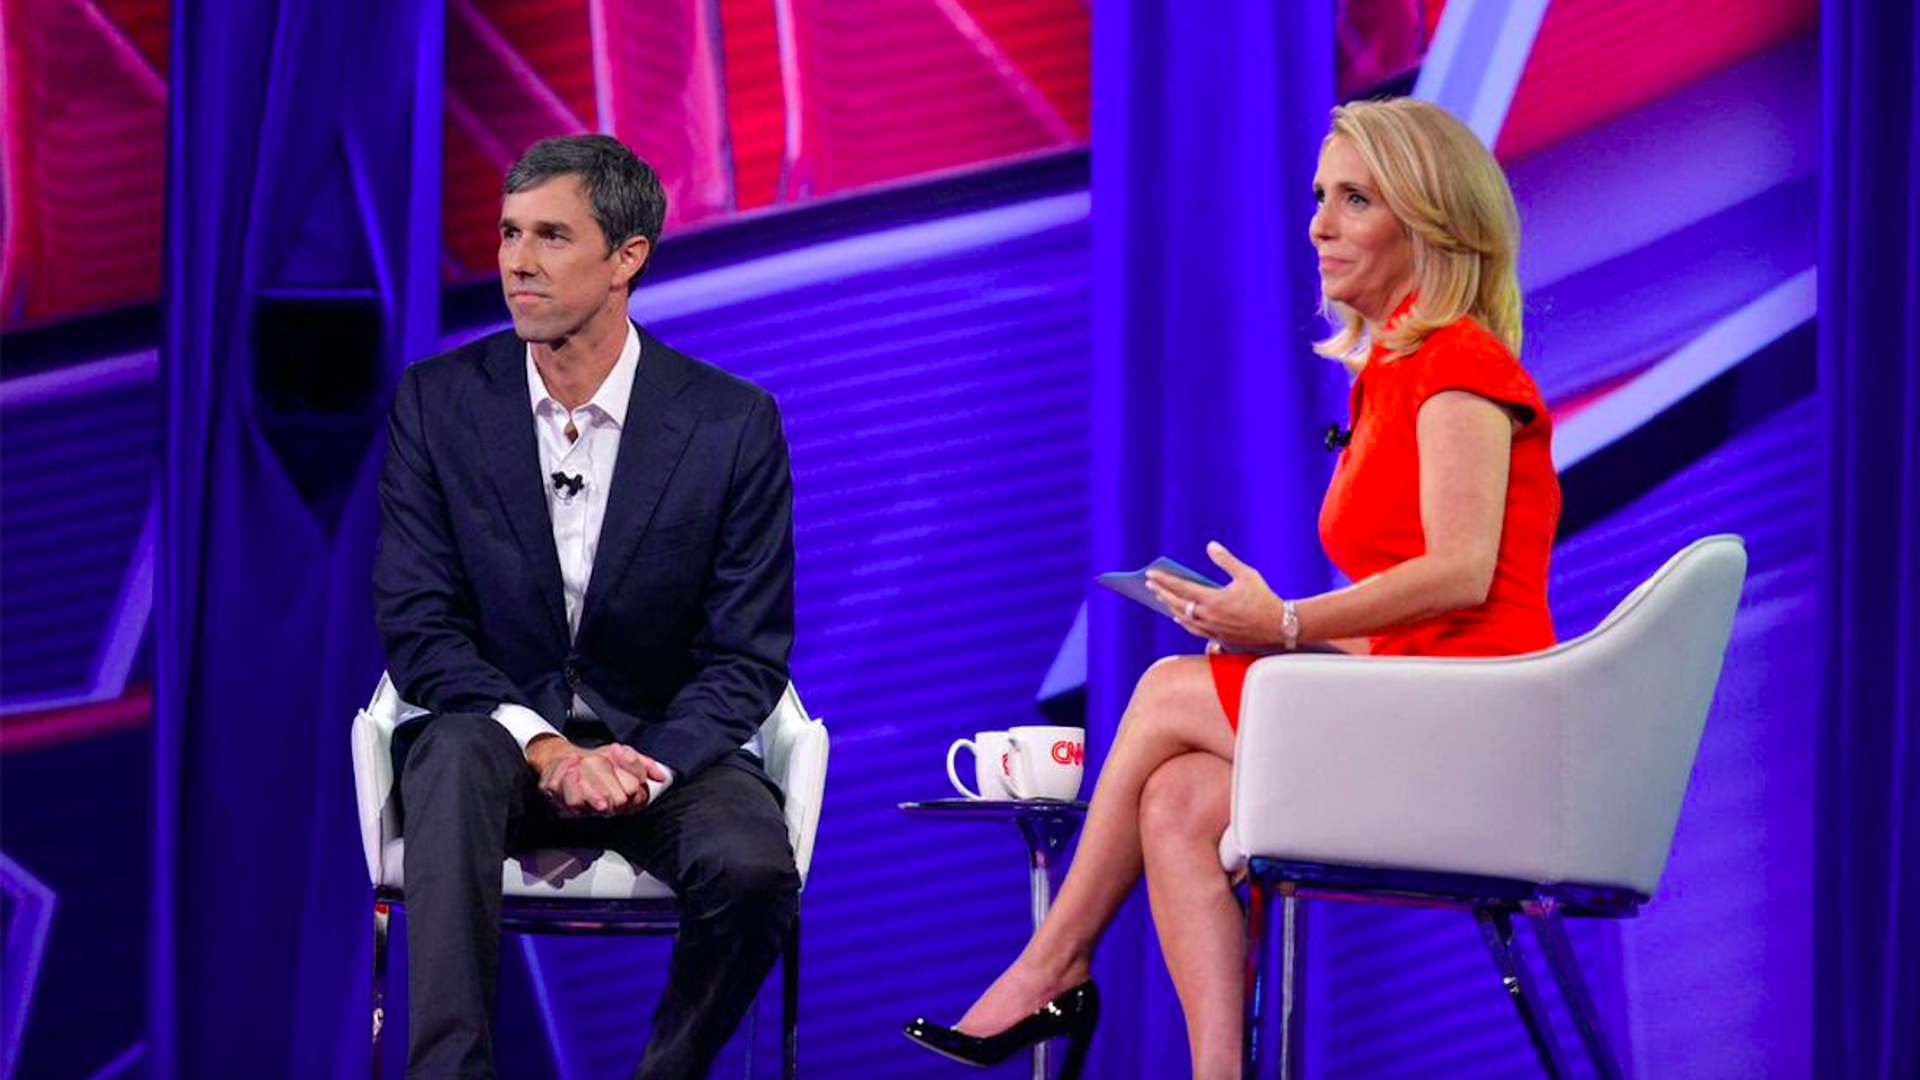 CNN's Dash Bash on stage during a town hall with Texas Senate Democratic candidate Beto O'Rourke.